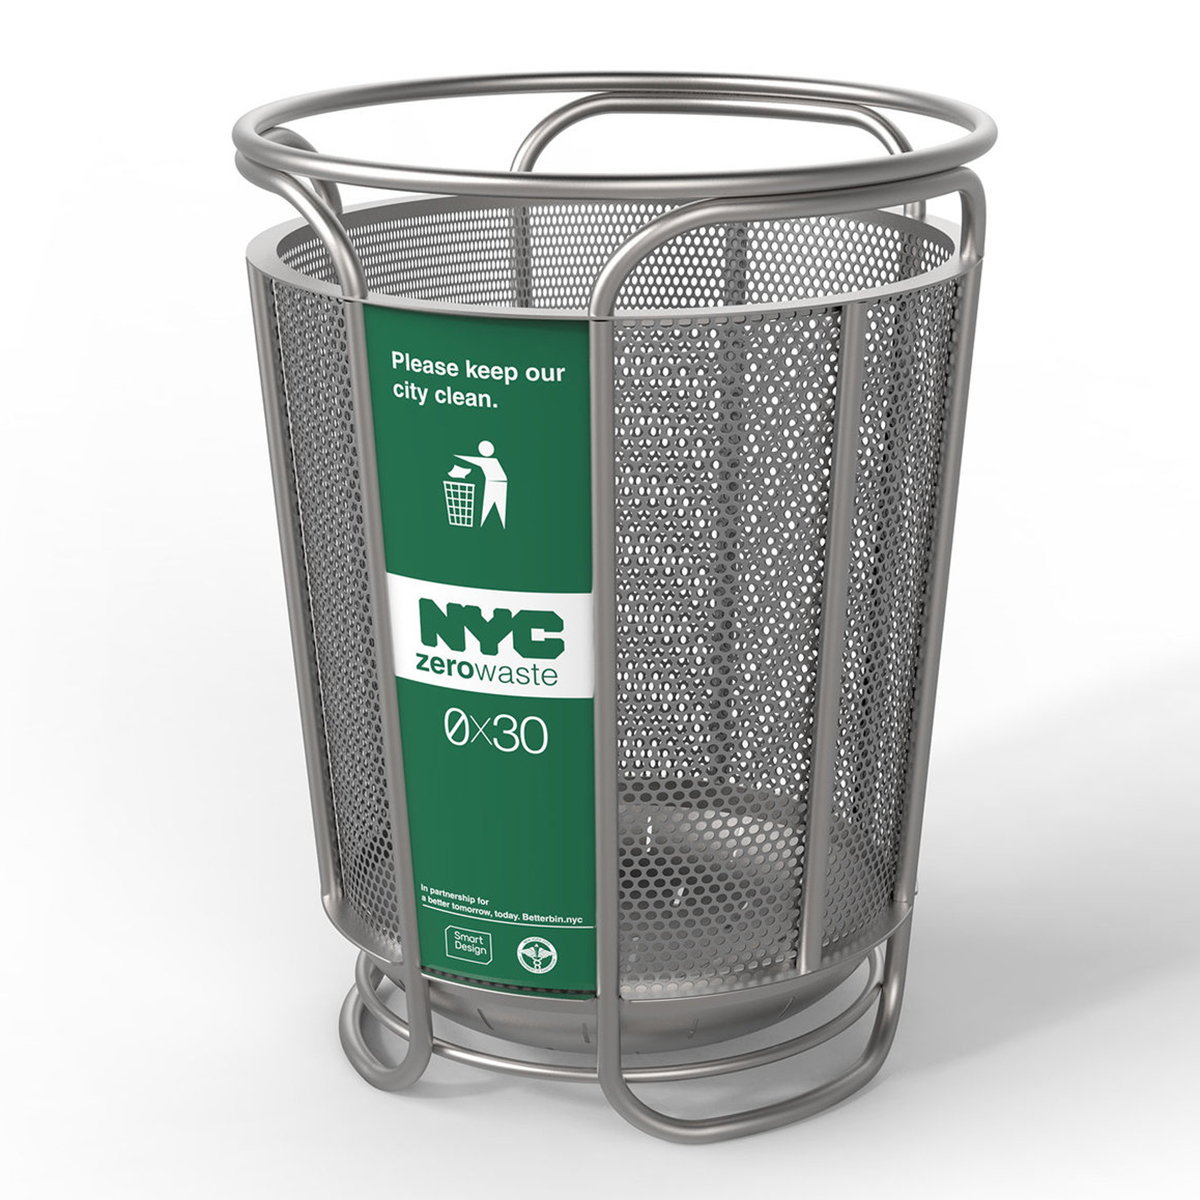 Redesigned Litter Baskets Set for Trial on NYC Streets